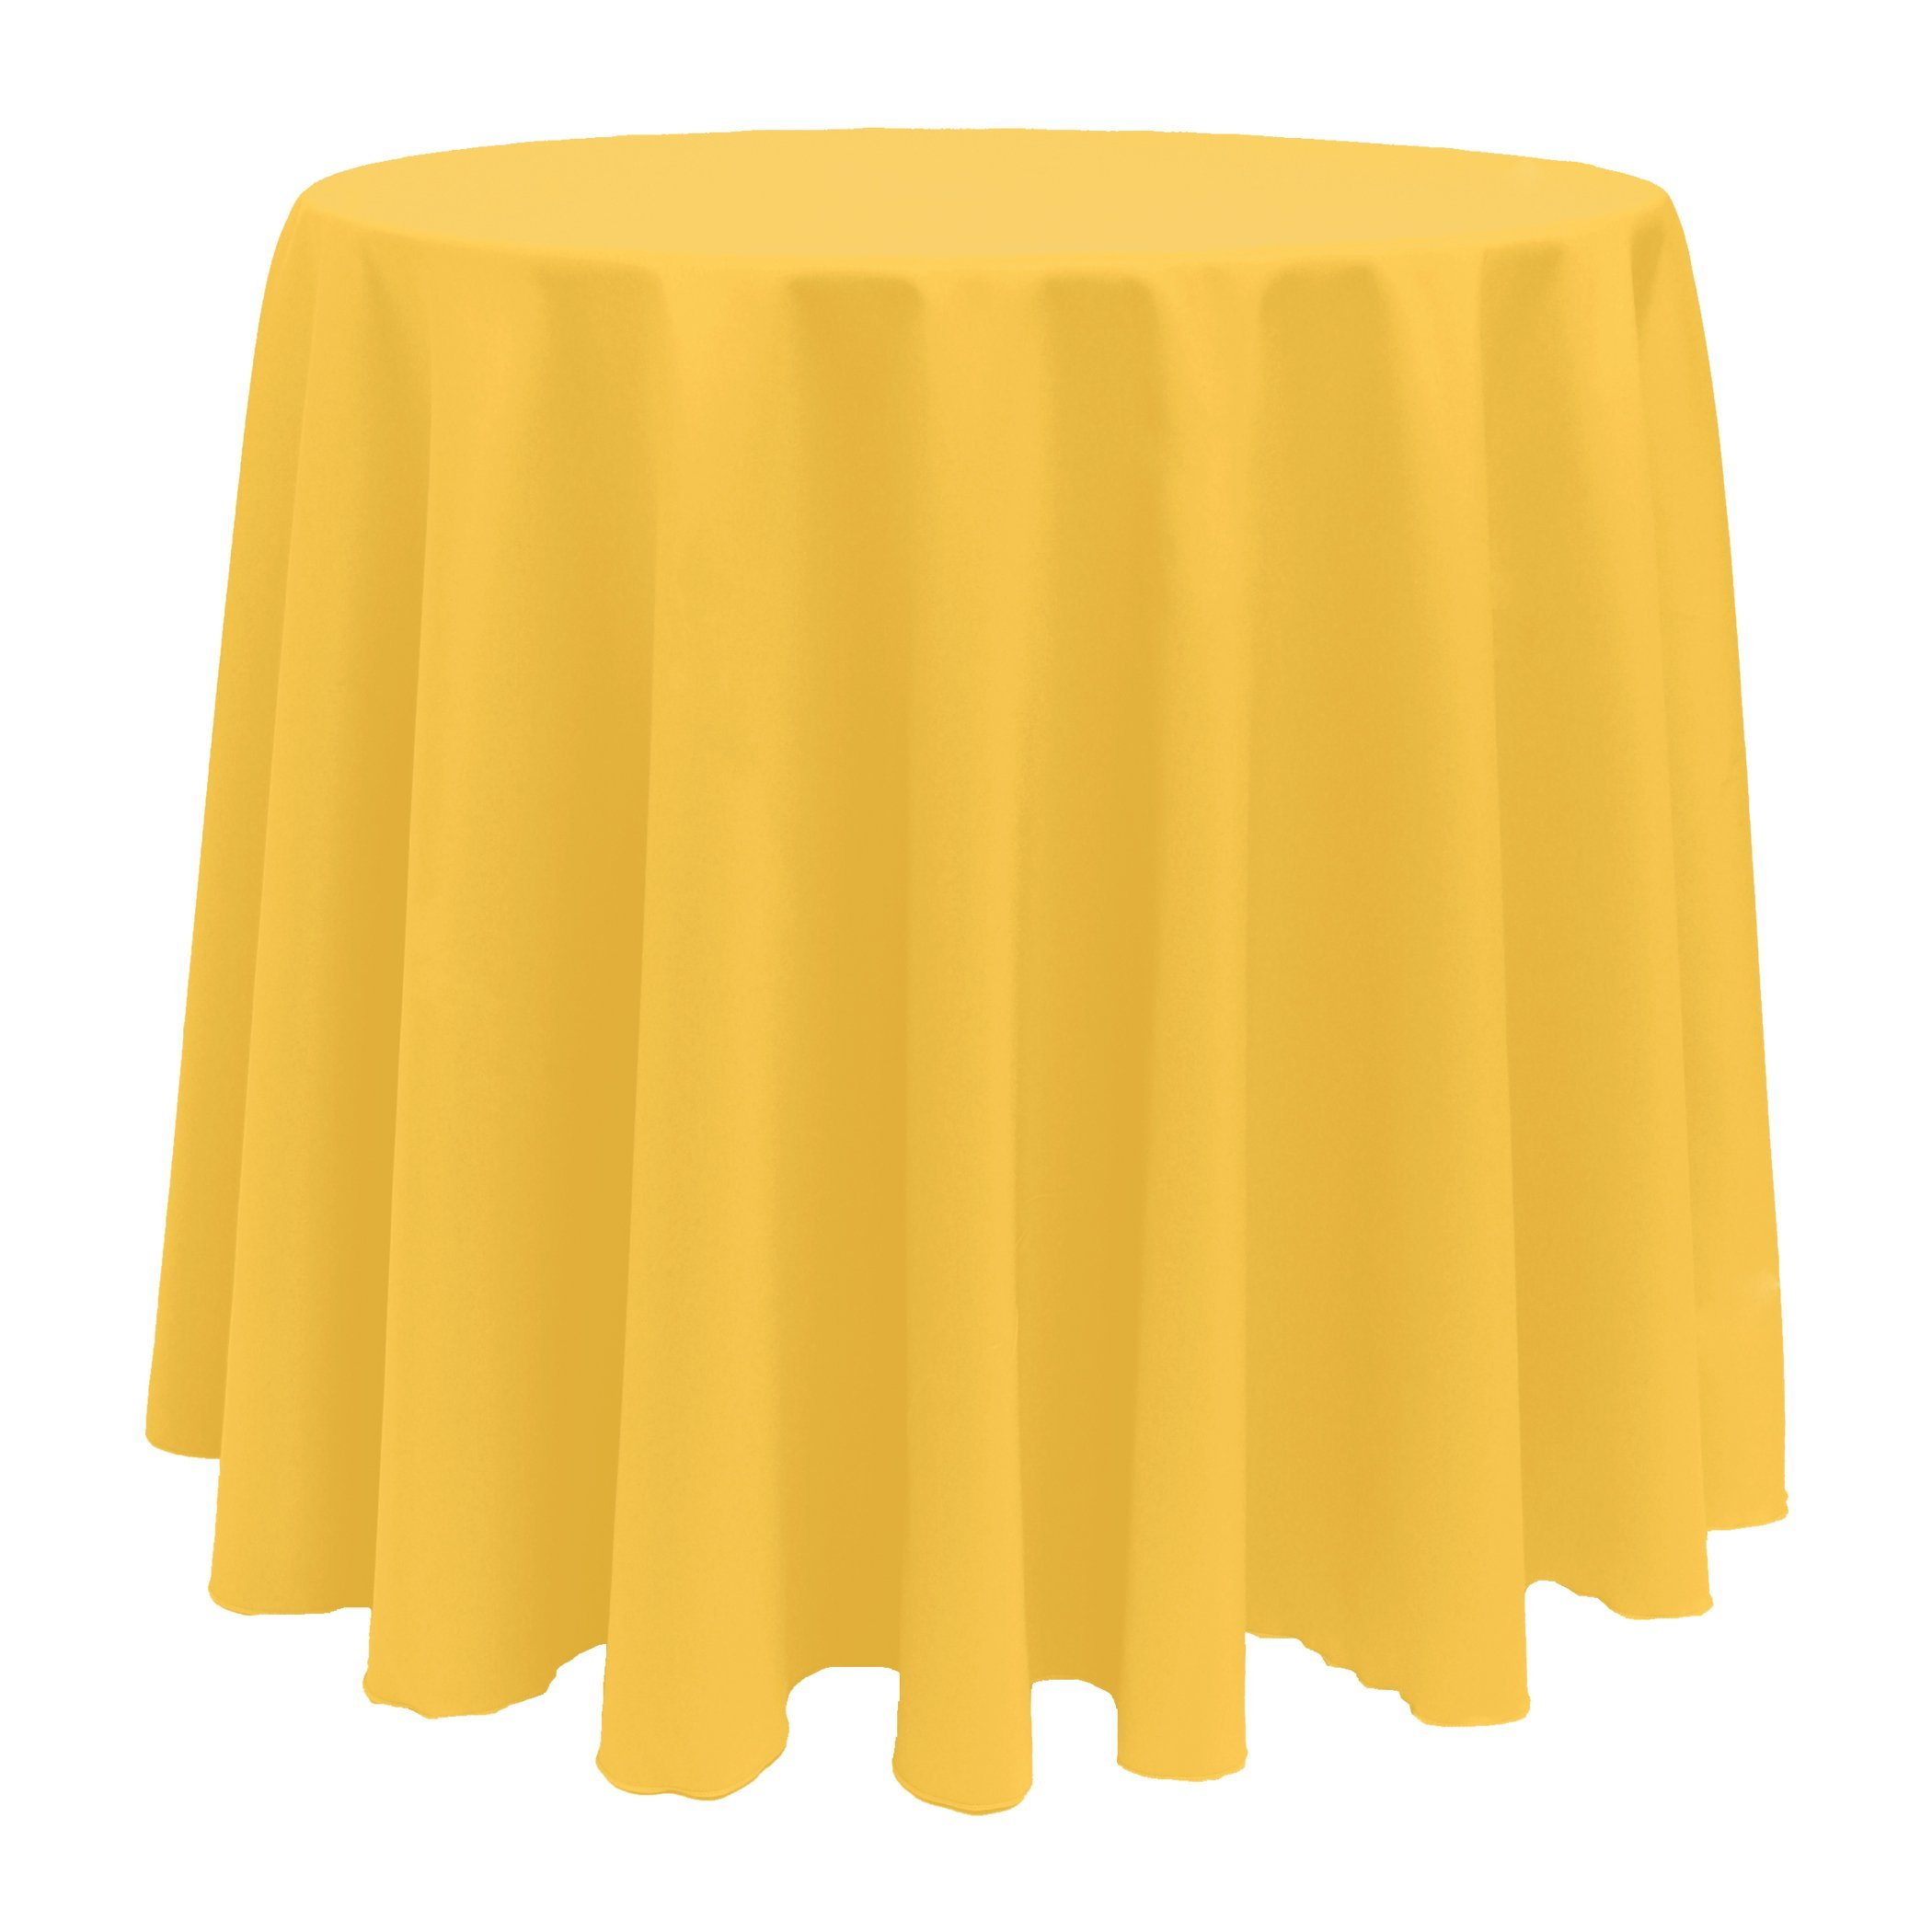 Ultimate Textile (10 Pack) 90-Inch Round Polyester Linen Tablecloth - for Wedding, Restaurant or Banquet use, Goldenrod